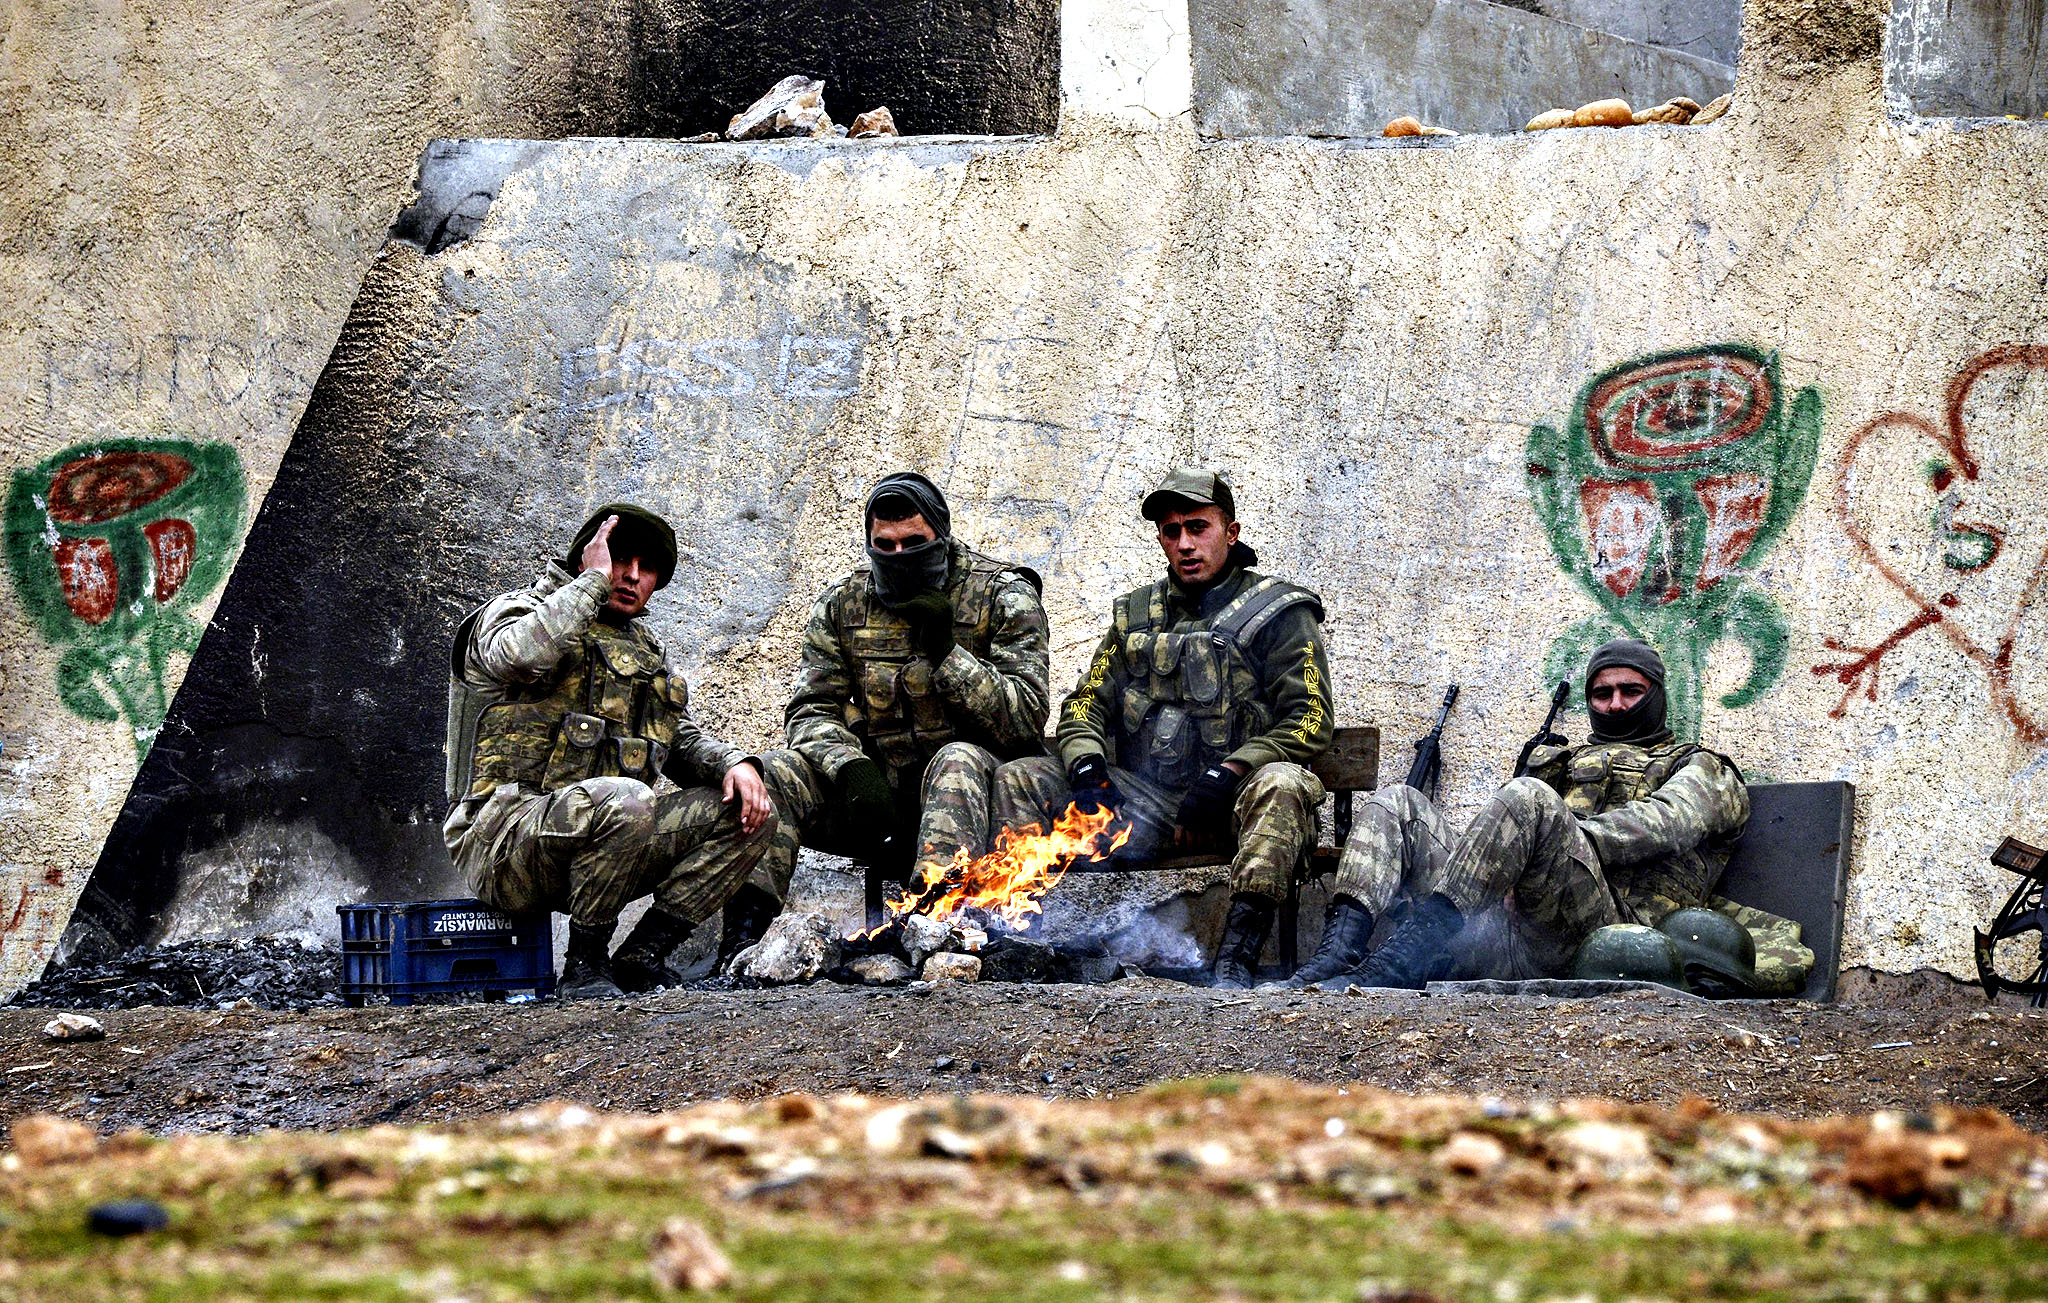 Turkish soldiers gather around a bonfire in Mursitpinar in the Sanliurfa province near the border with Syria on Monday. Islamic State group jihadists battling for control of the Syrian town of Kobane (Ain al-Arab) suffered some of their heaviest losses yet in 24 hours of clashes and US-led air strikes, monitors said. At least 50 jihadists were killed in the embattled border town in suicide bombings, clashes with Kobane's Kurdish defenders and air strikes, the Syrian Observatory for Human Rights said.